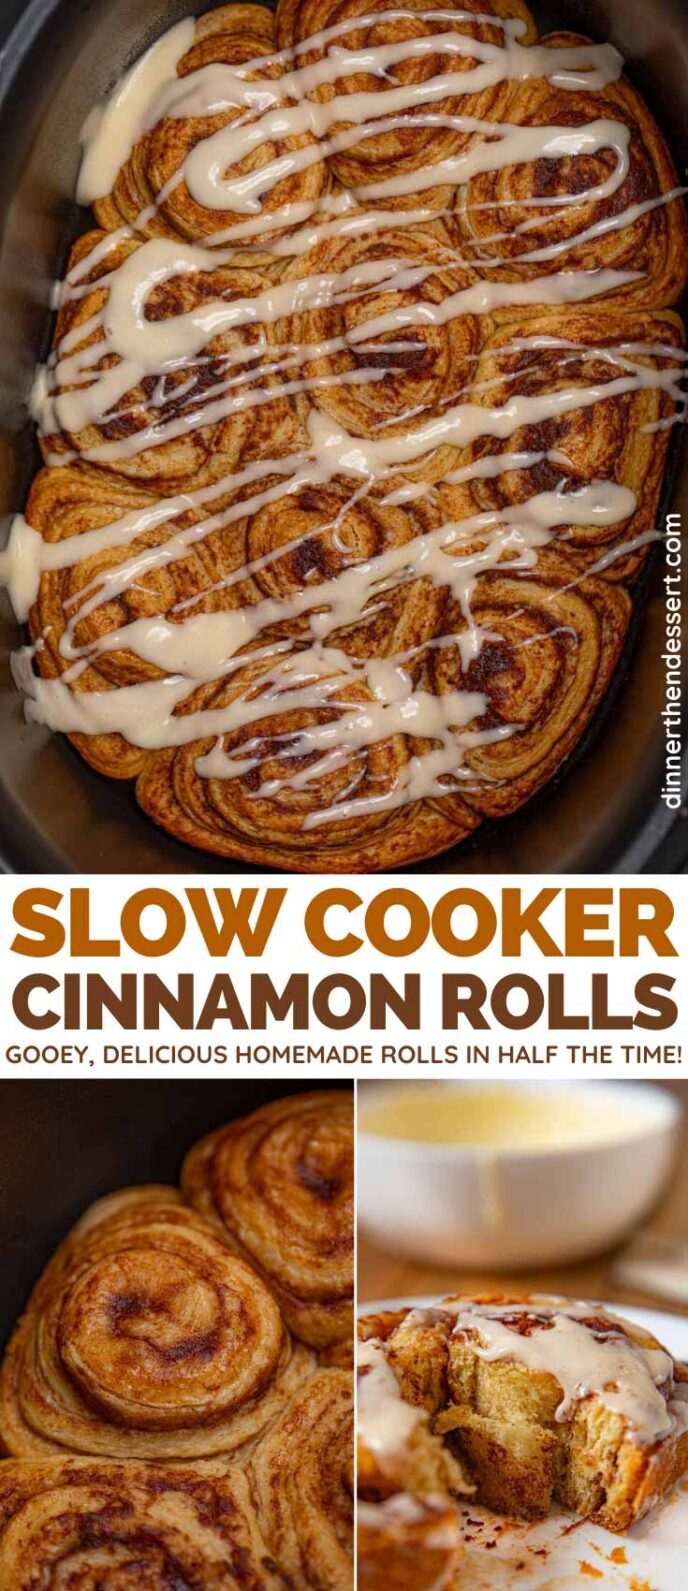 Slow Cooker Cinnamon Rolls collage